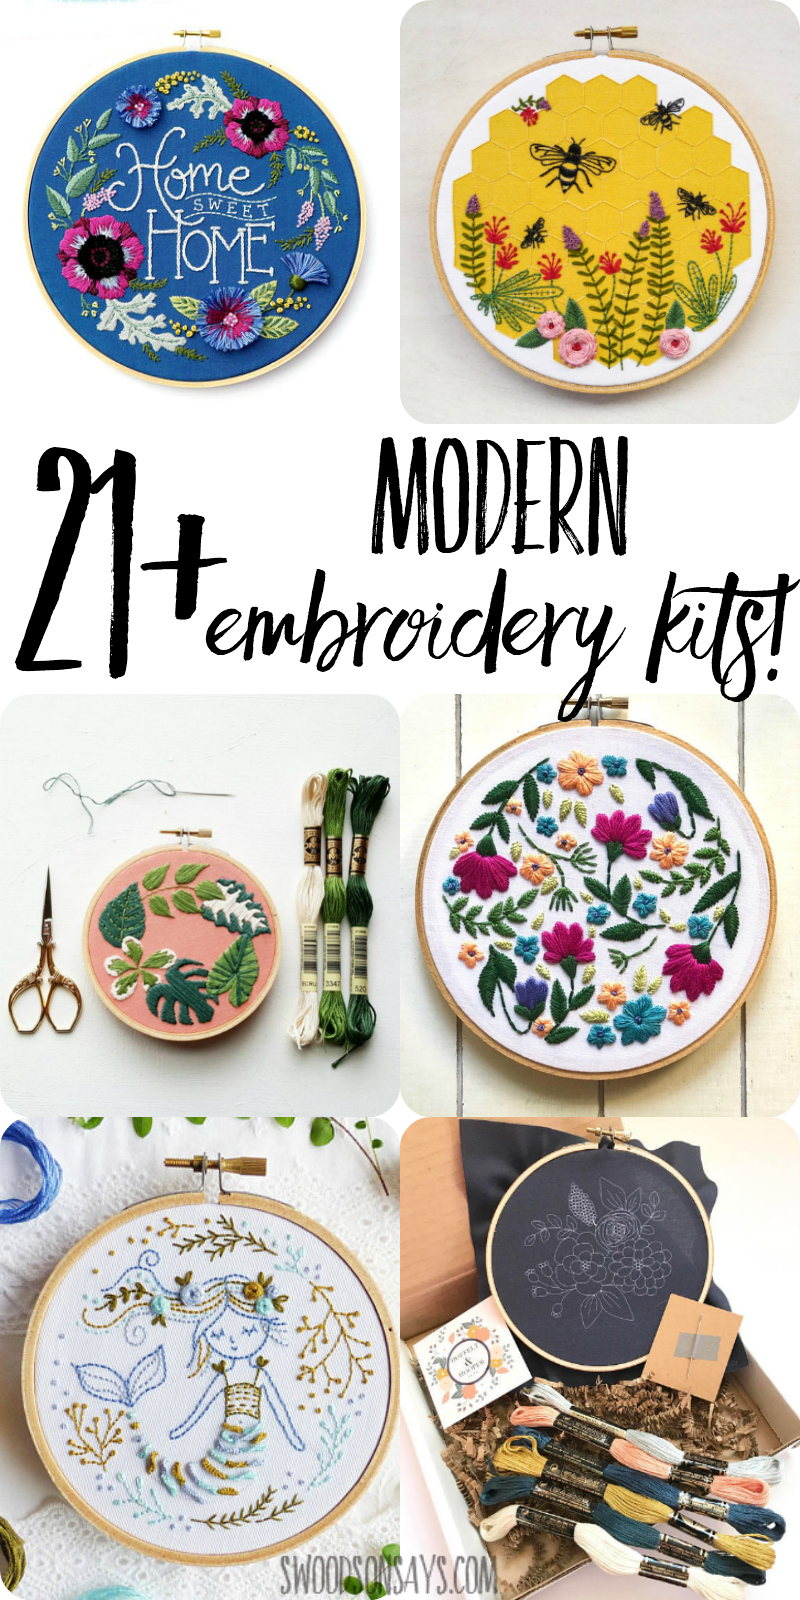 Keep thinking you want to try embroidery? Skip buying all the supplies and try a hand embroidery kit! With everything included, these kits are a great way to try out a new hobby. Modern embroidery kits make great gifts, too, so click through and check out over 20 different modern embroidery pattern makers and the kits that they offer. #embroidery #handsewing